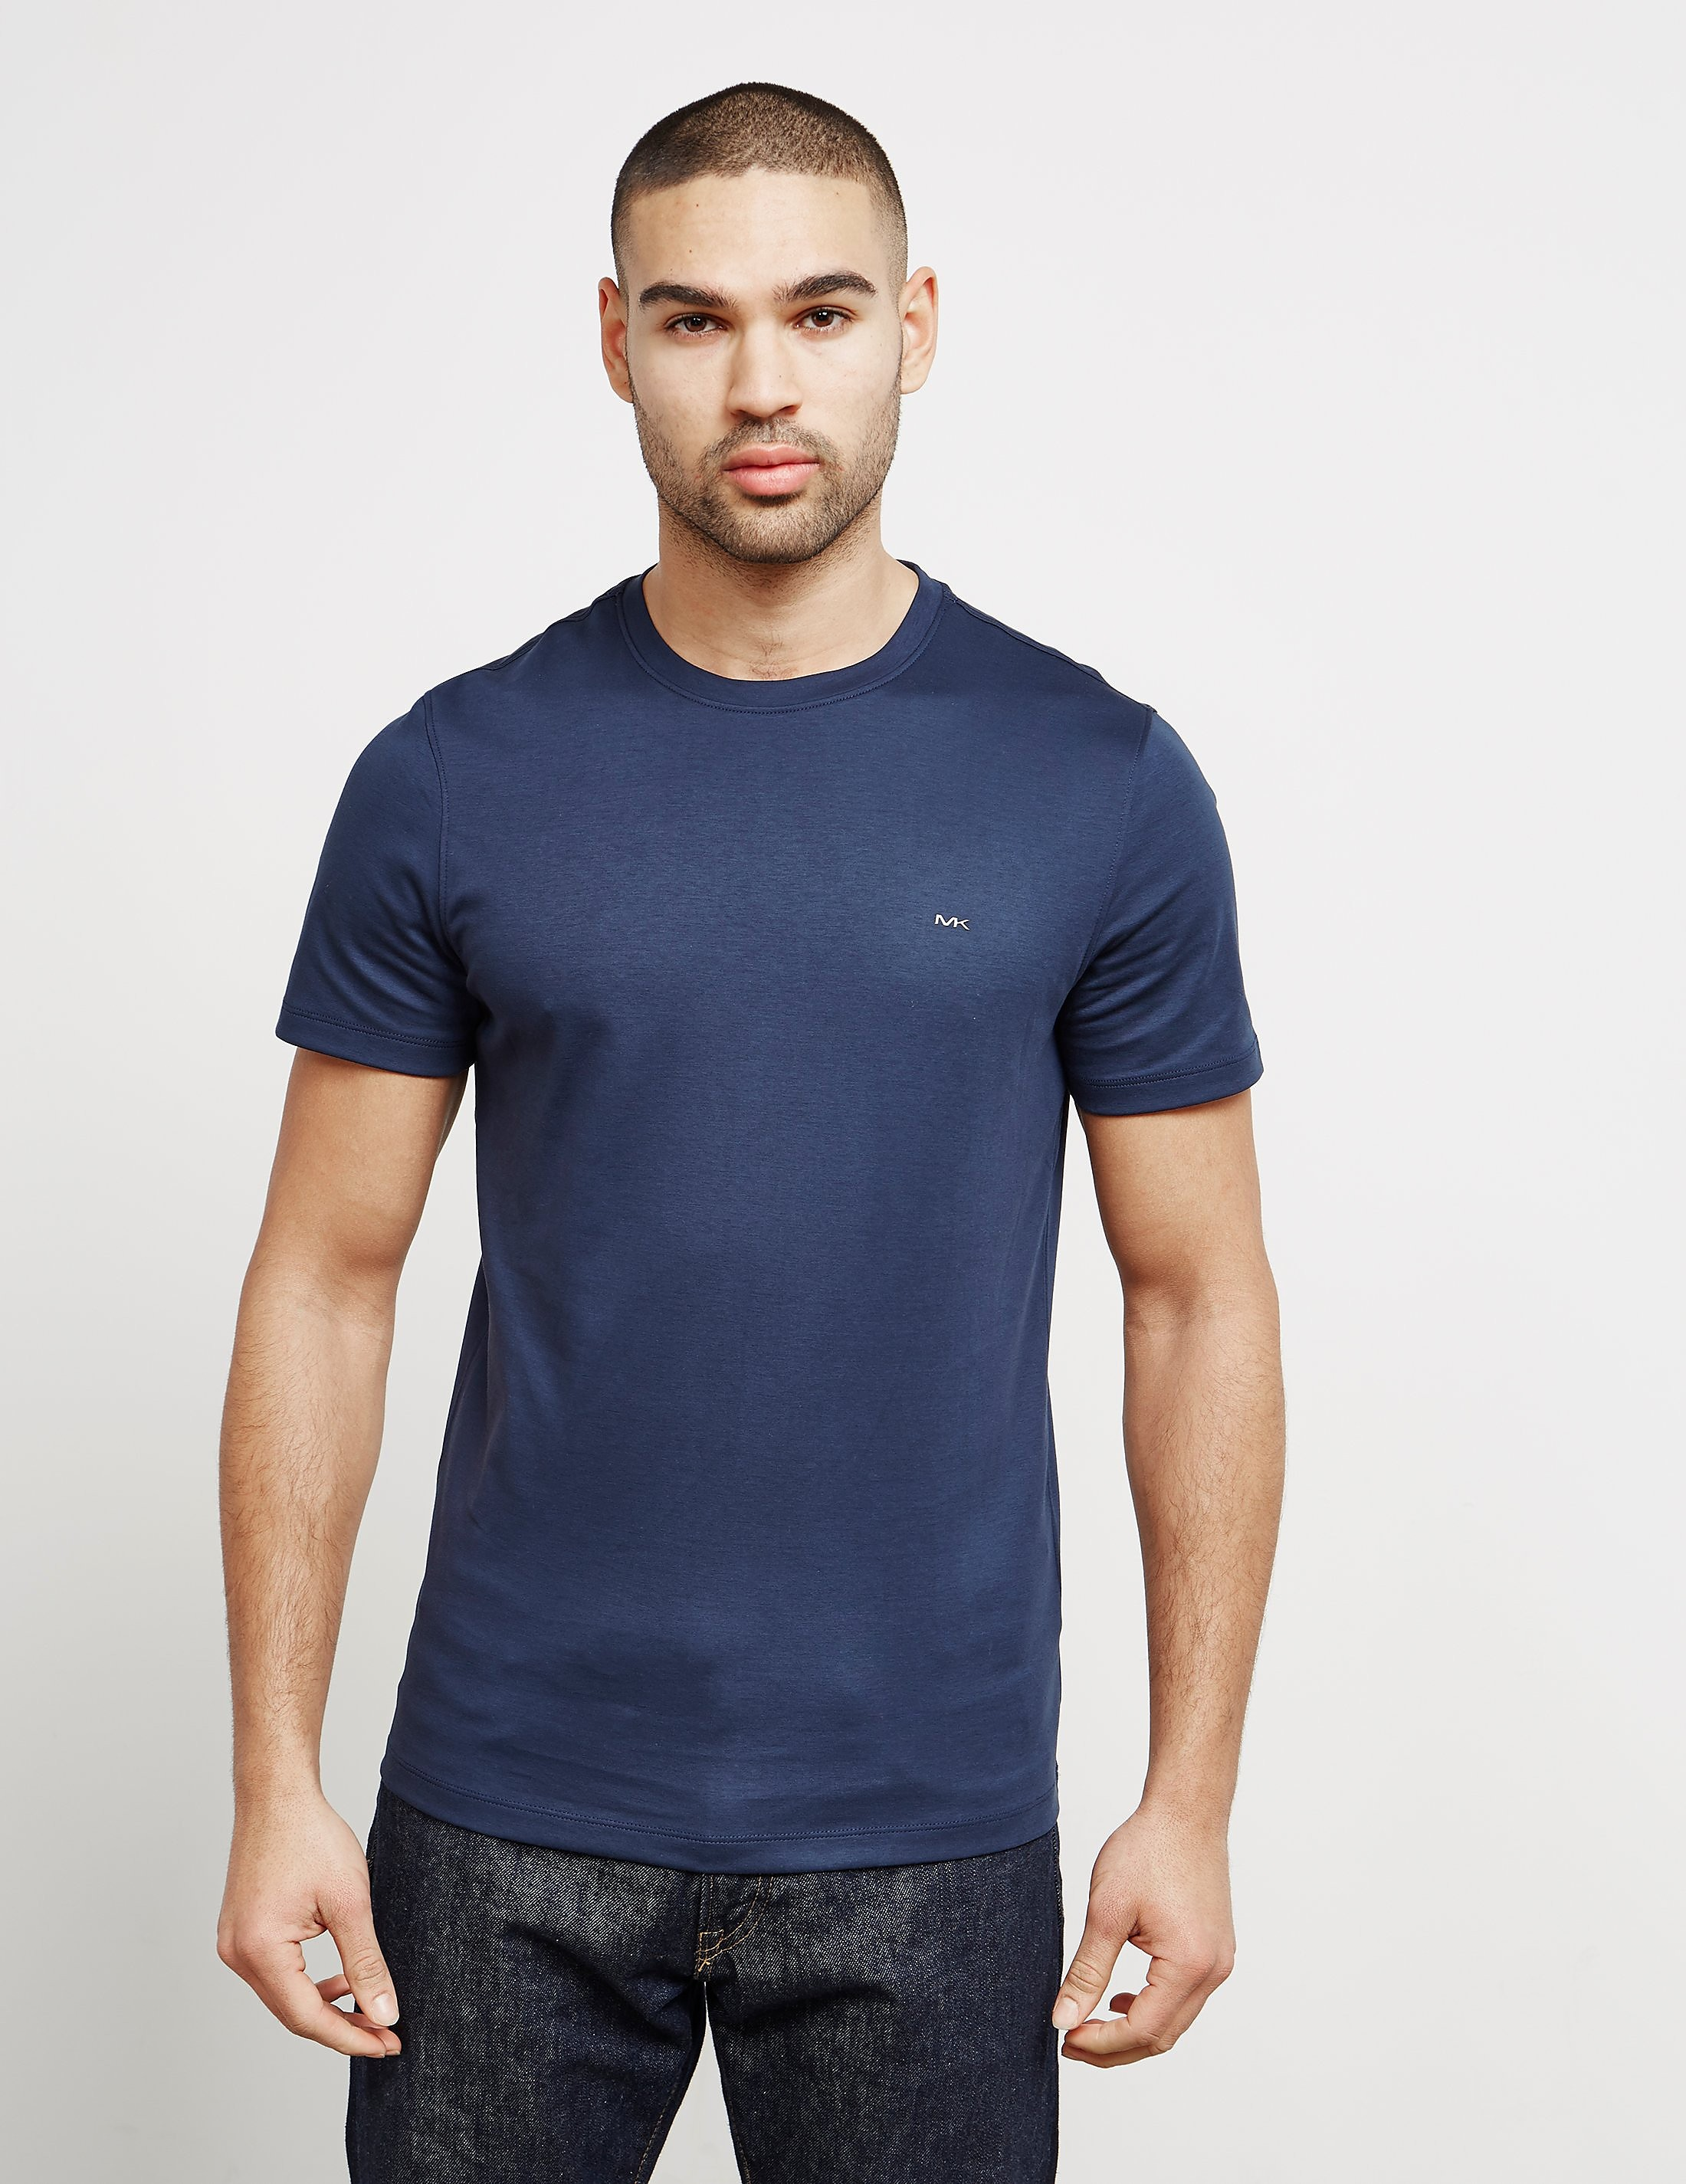 Michael Kors Sleek Crew Neck T-Shirt